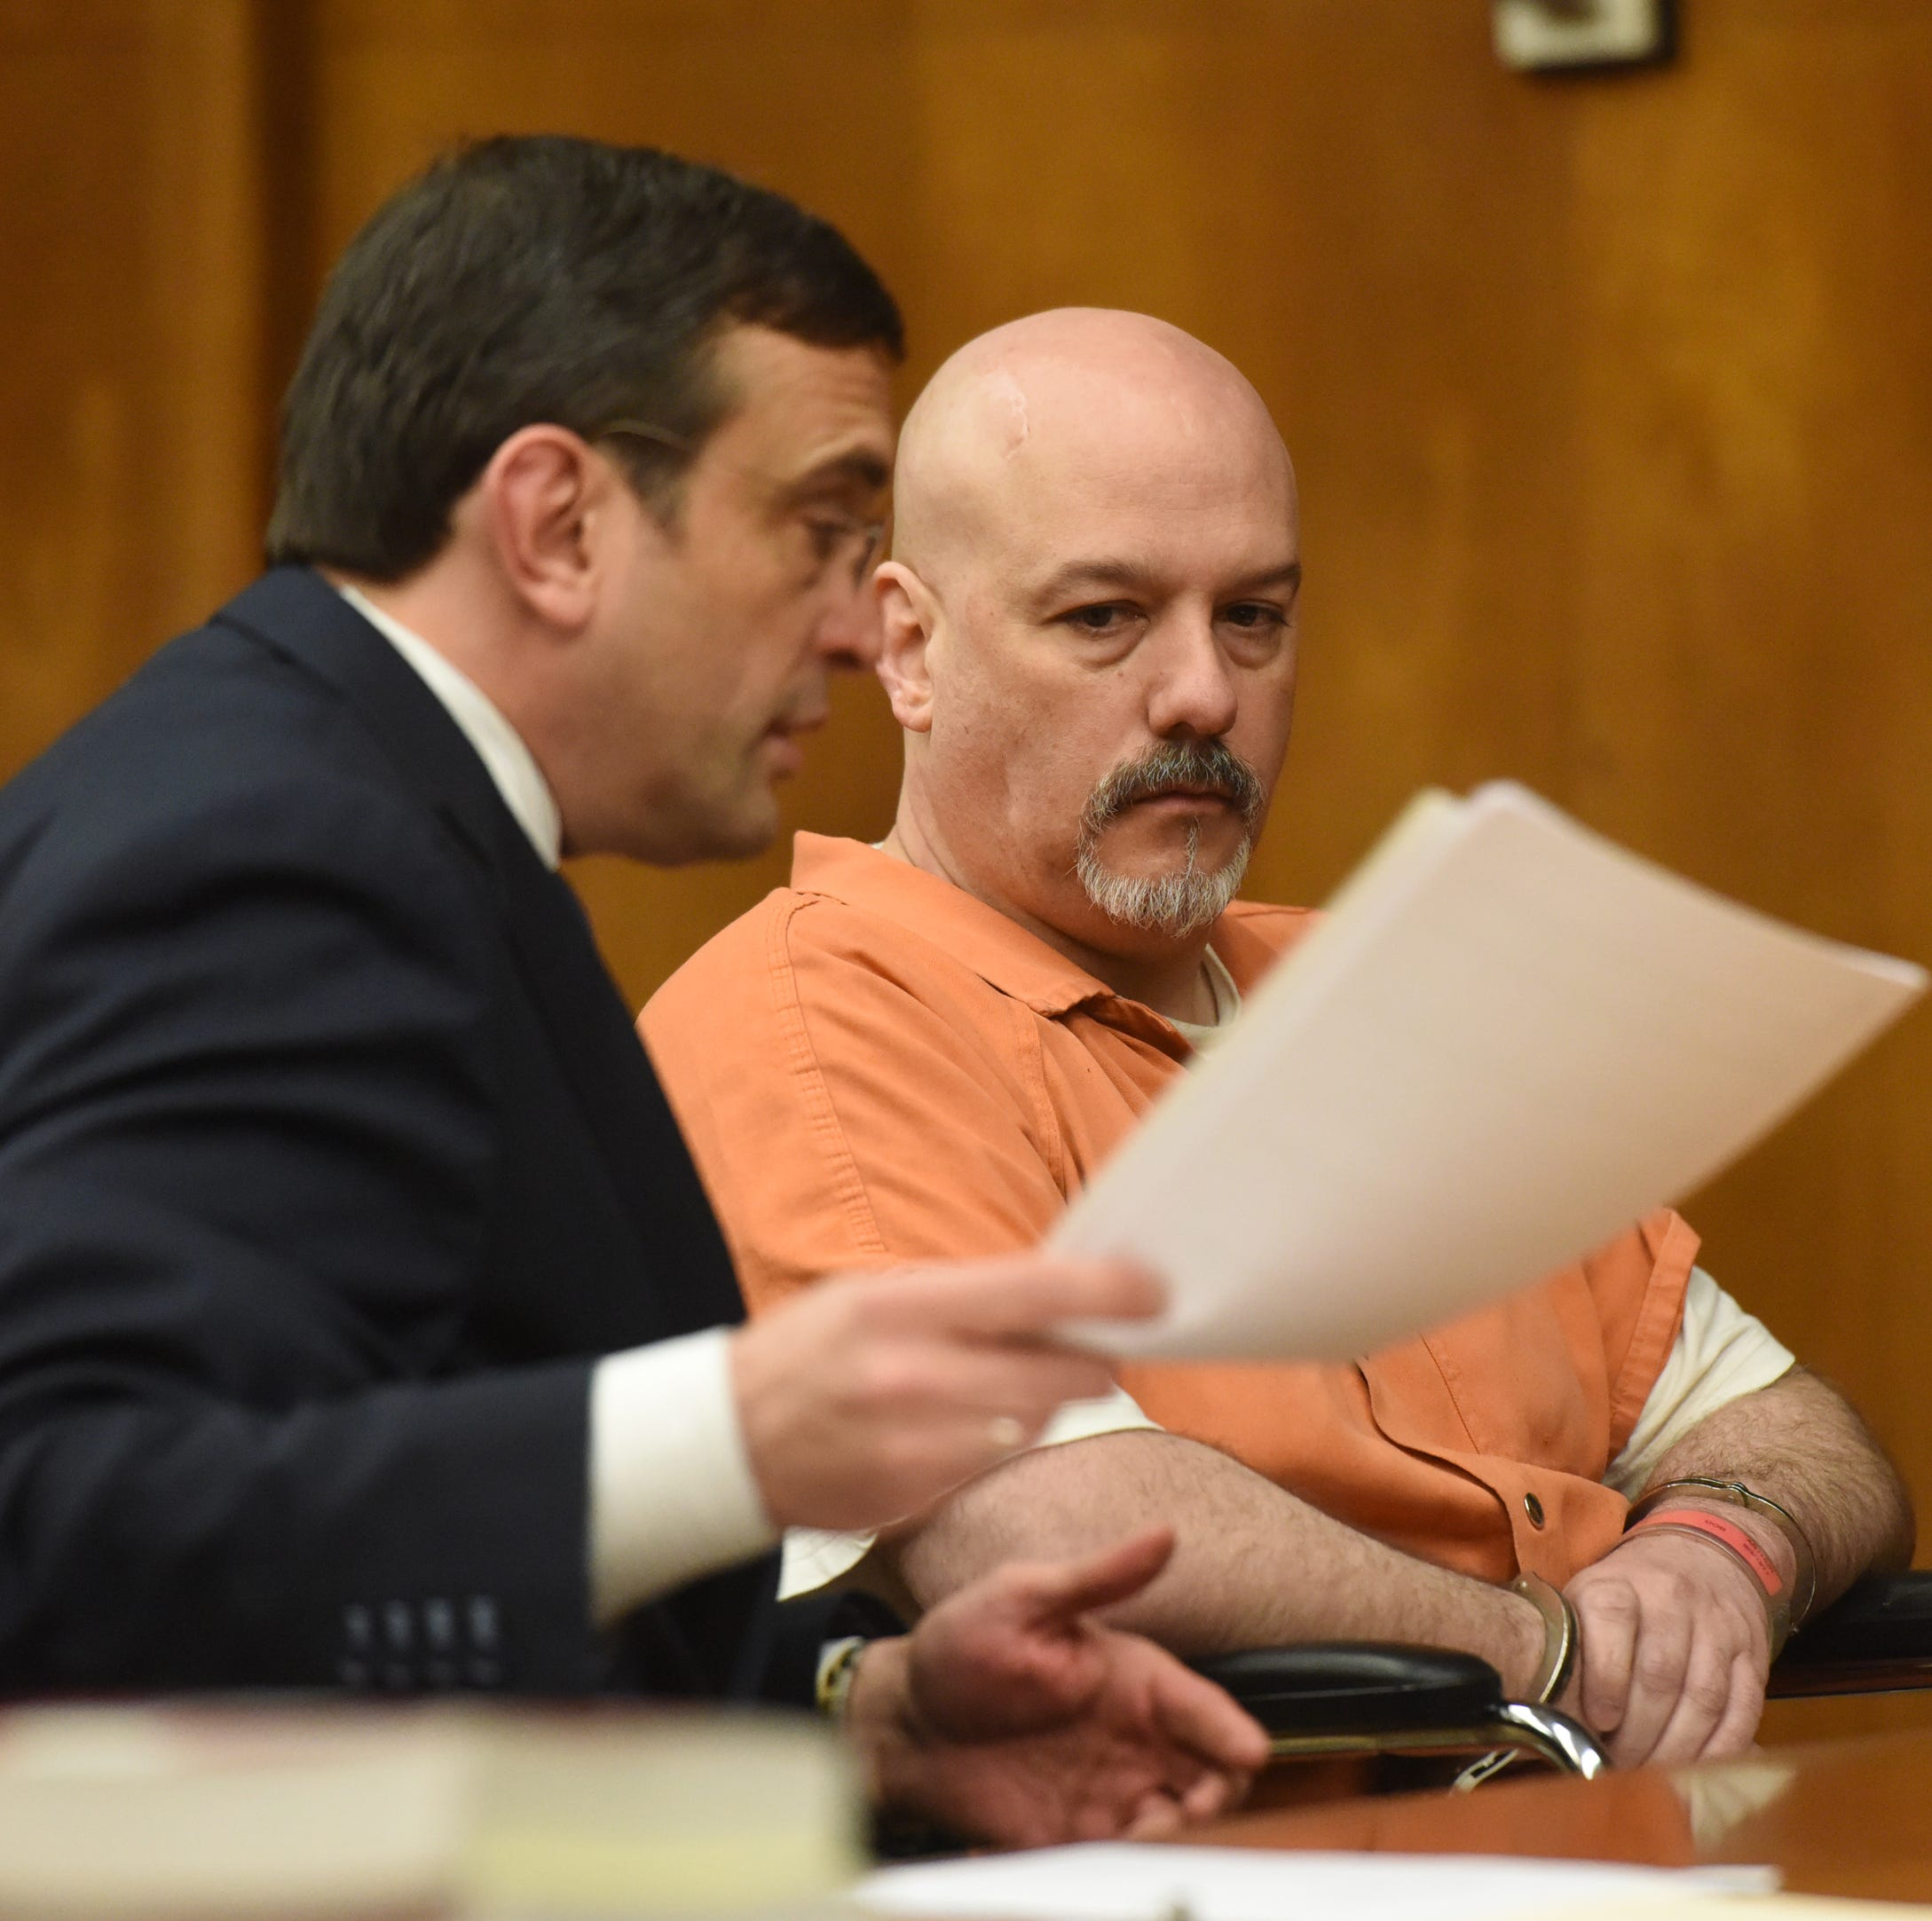 Attorneys for Midland Park machete murderer quit abruptly; sentencing delayed